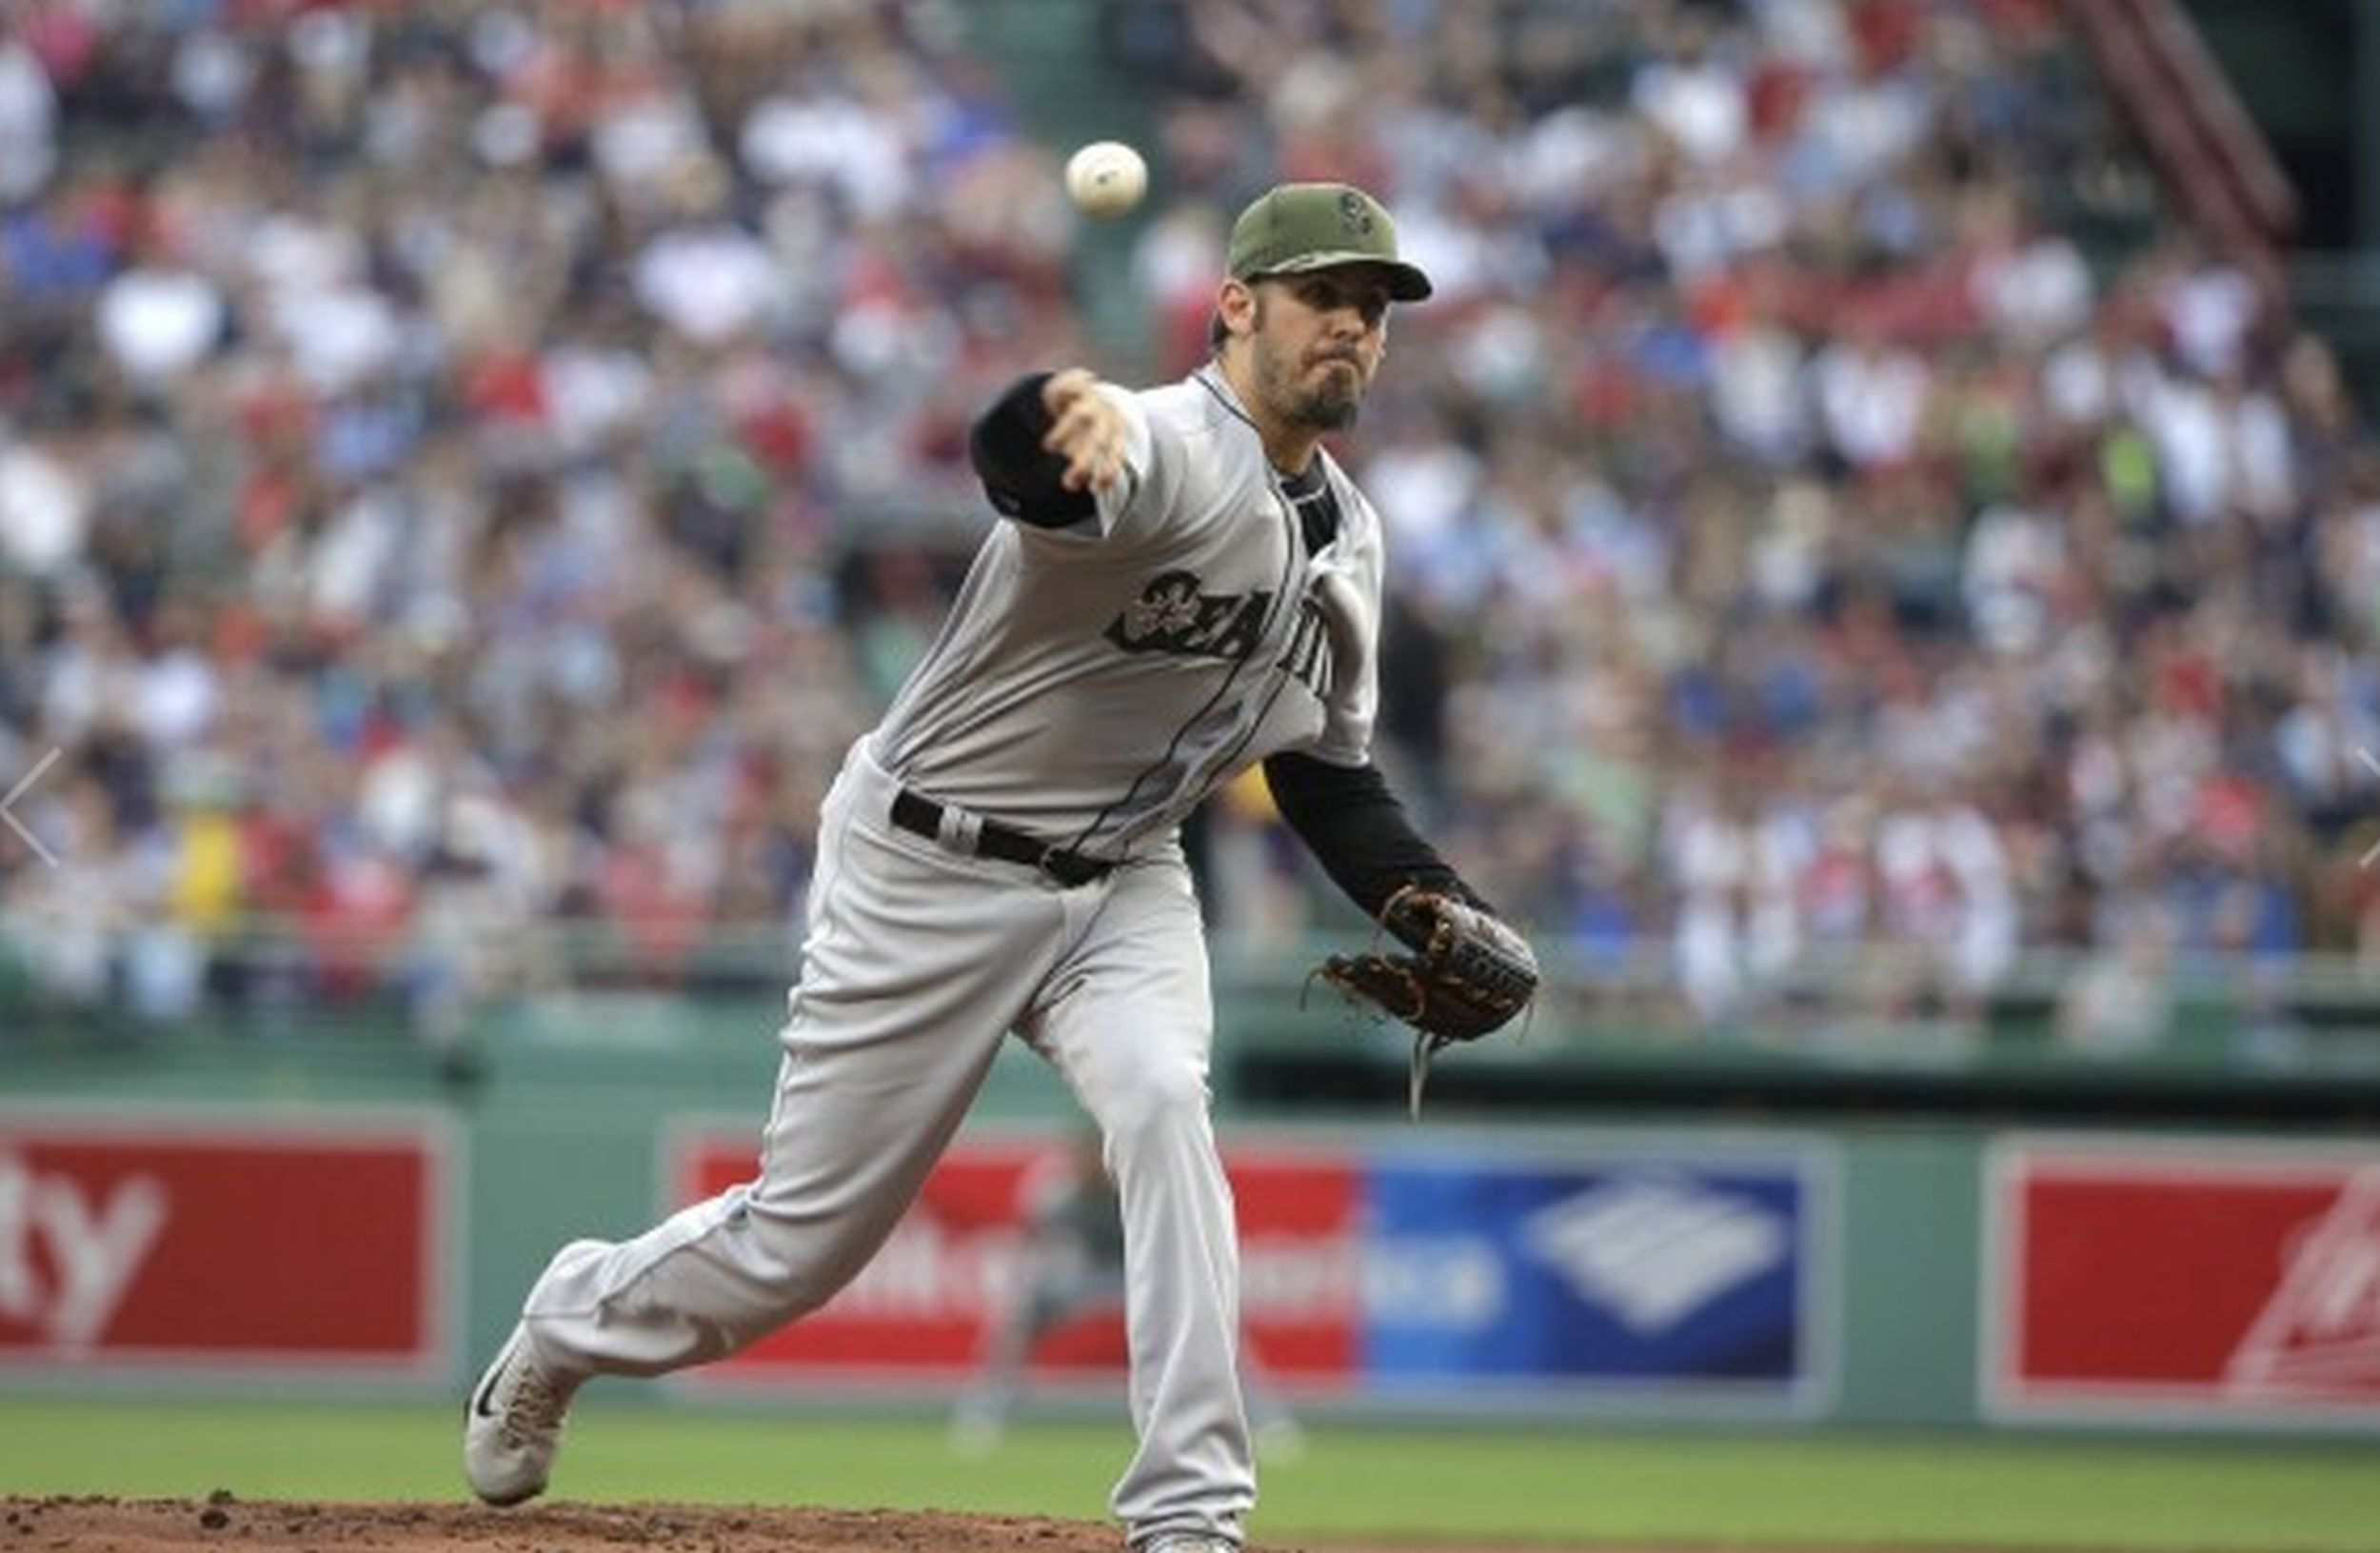 Seattle Mariners' Christian Bergman delivers a pitch against the Boston Red Sox in the first inning of a baseball game Sunday, May 28. AP WIREPHOTO/Steven Senne